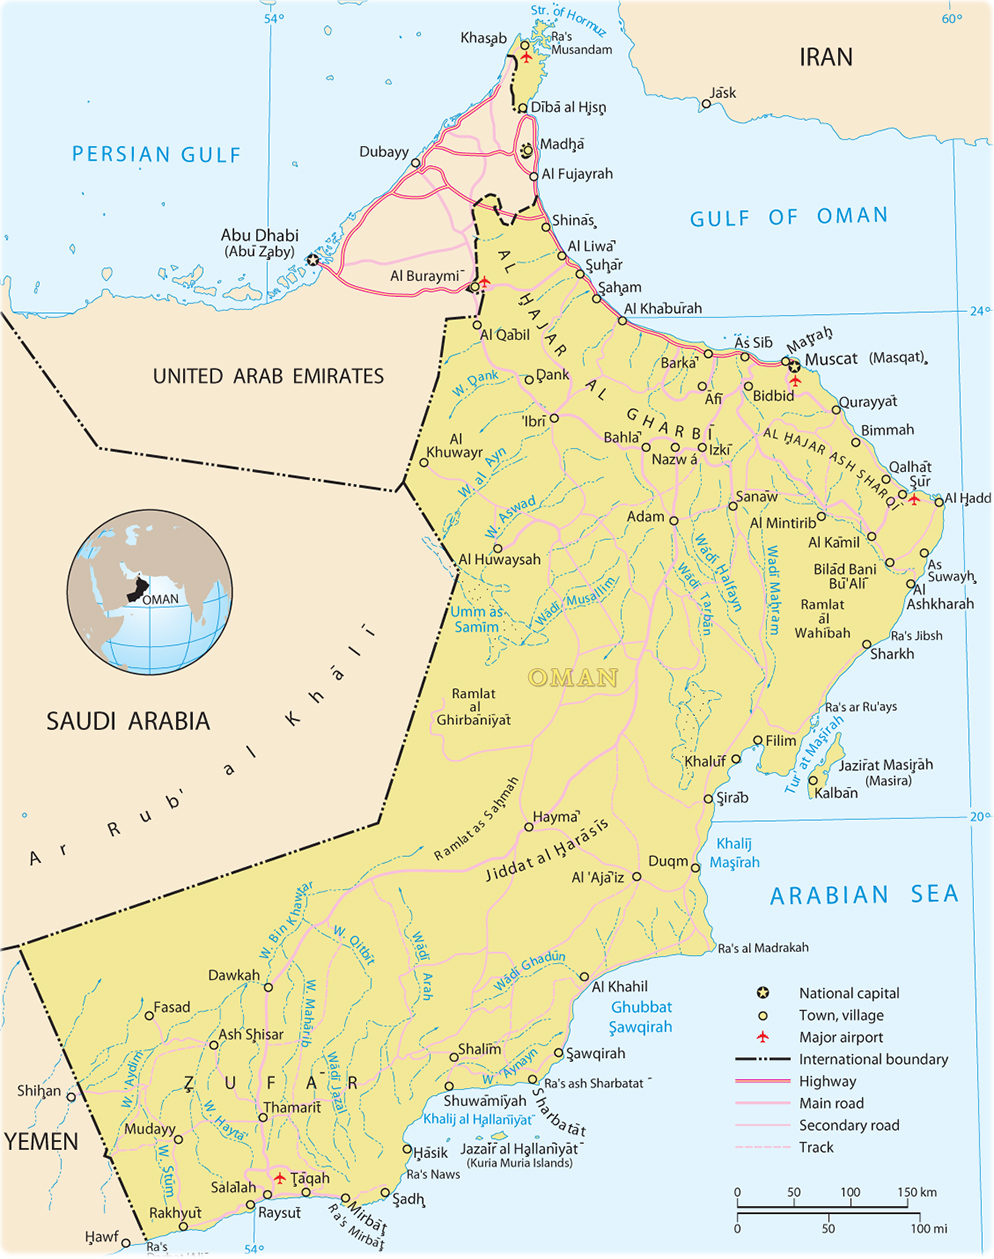 Oman Map, Mu - Asia Map In Oman on map in cyprus, map in jamaica, map in botswana, map in nigeria, map in somalia, map in guatemala, map in nicaragua, map in burma, map in himalayas, map in mali, map in mongolia, map in belgium, map in sudan, map in bhutan, map in denmark, map in netherlands, map in yemen, map in iceland, map in honduras, map in mauritius,